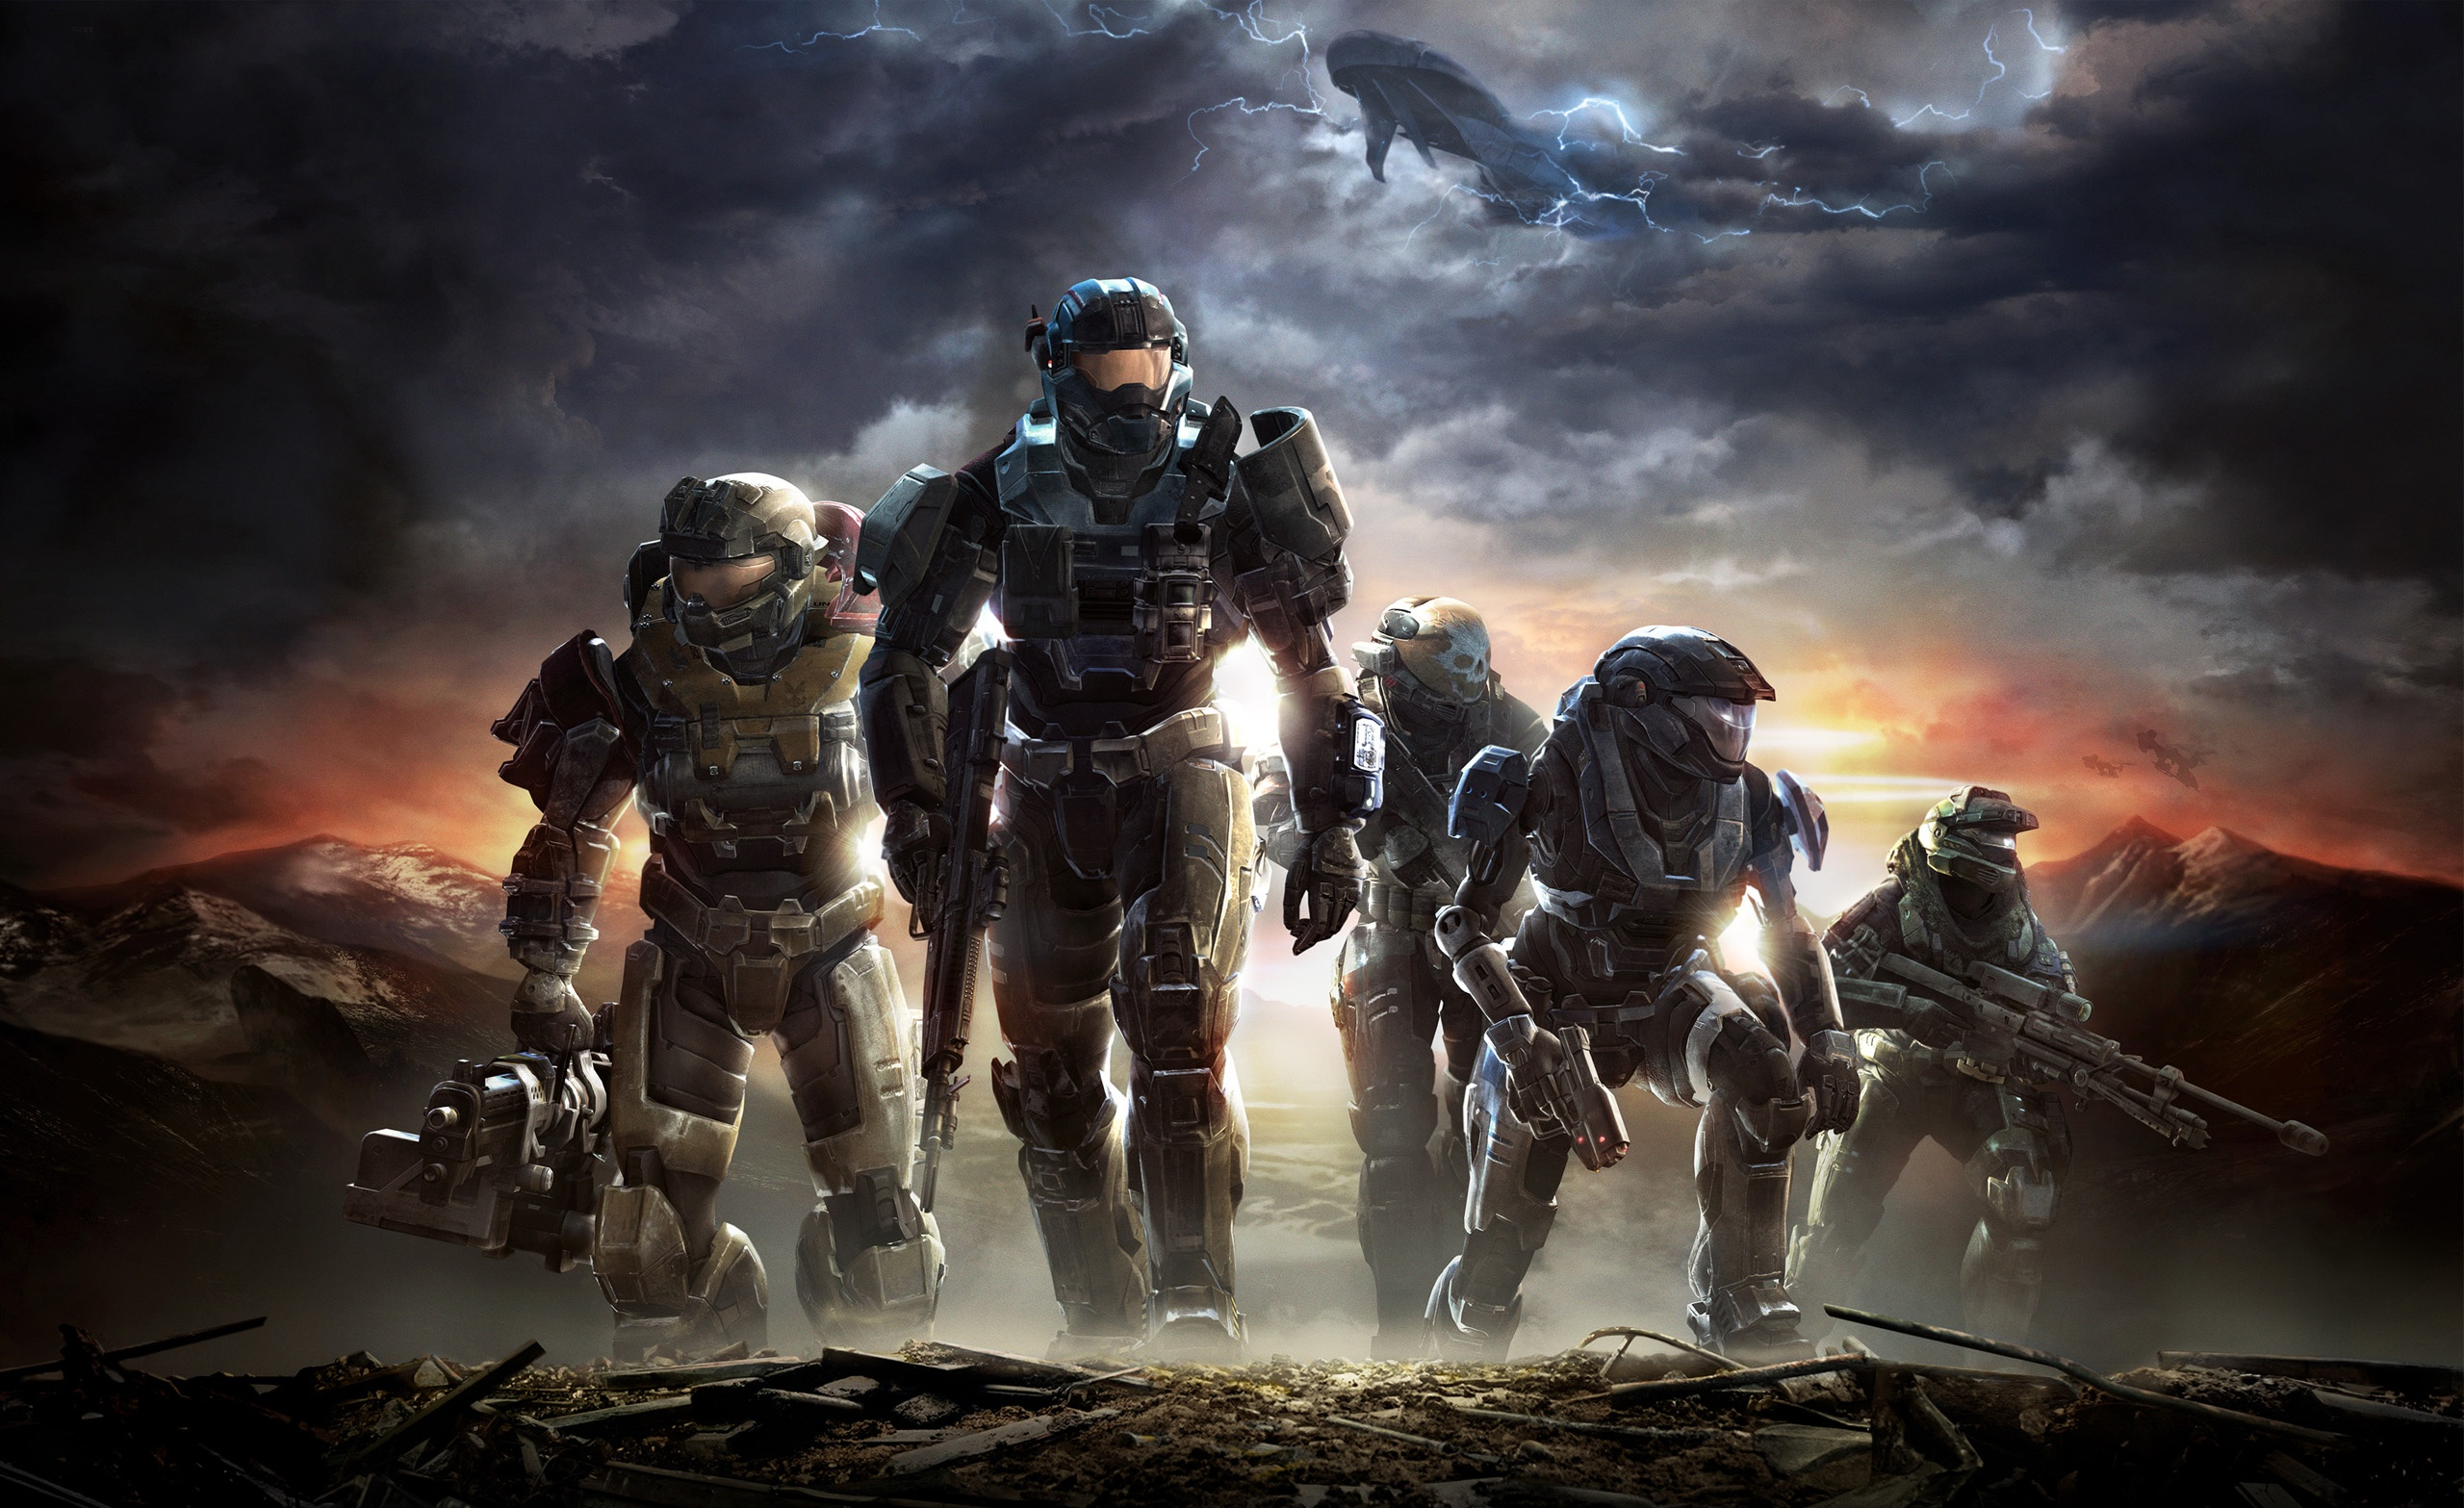 Video Game - Halo  Reach Wallpaper